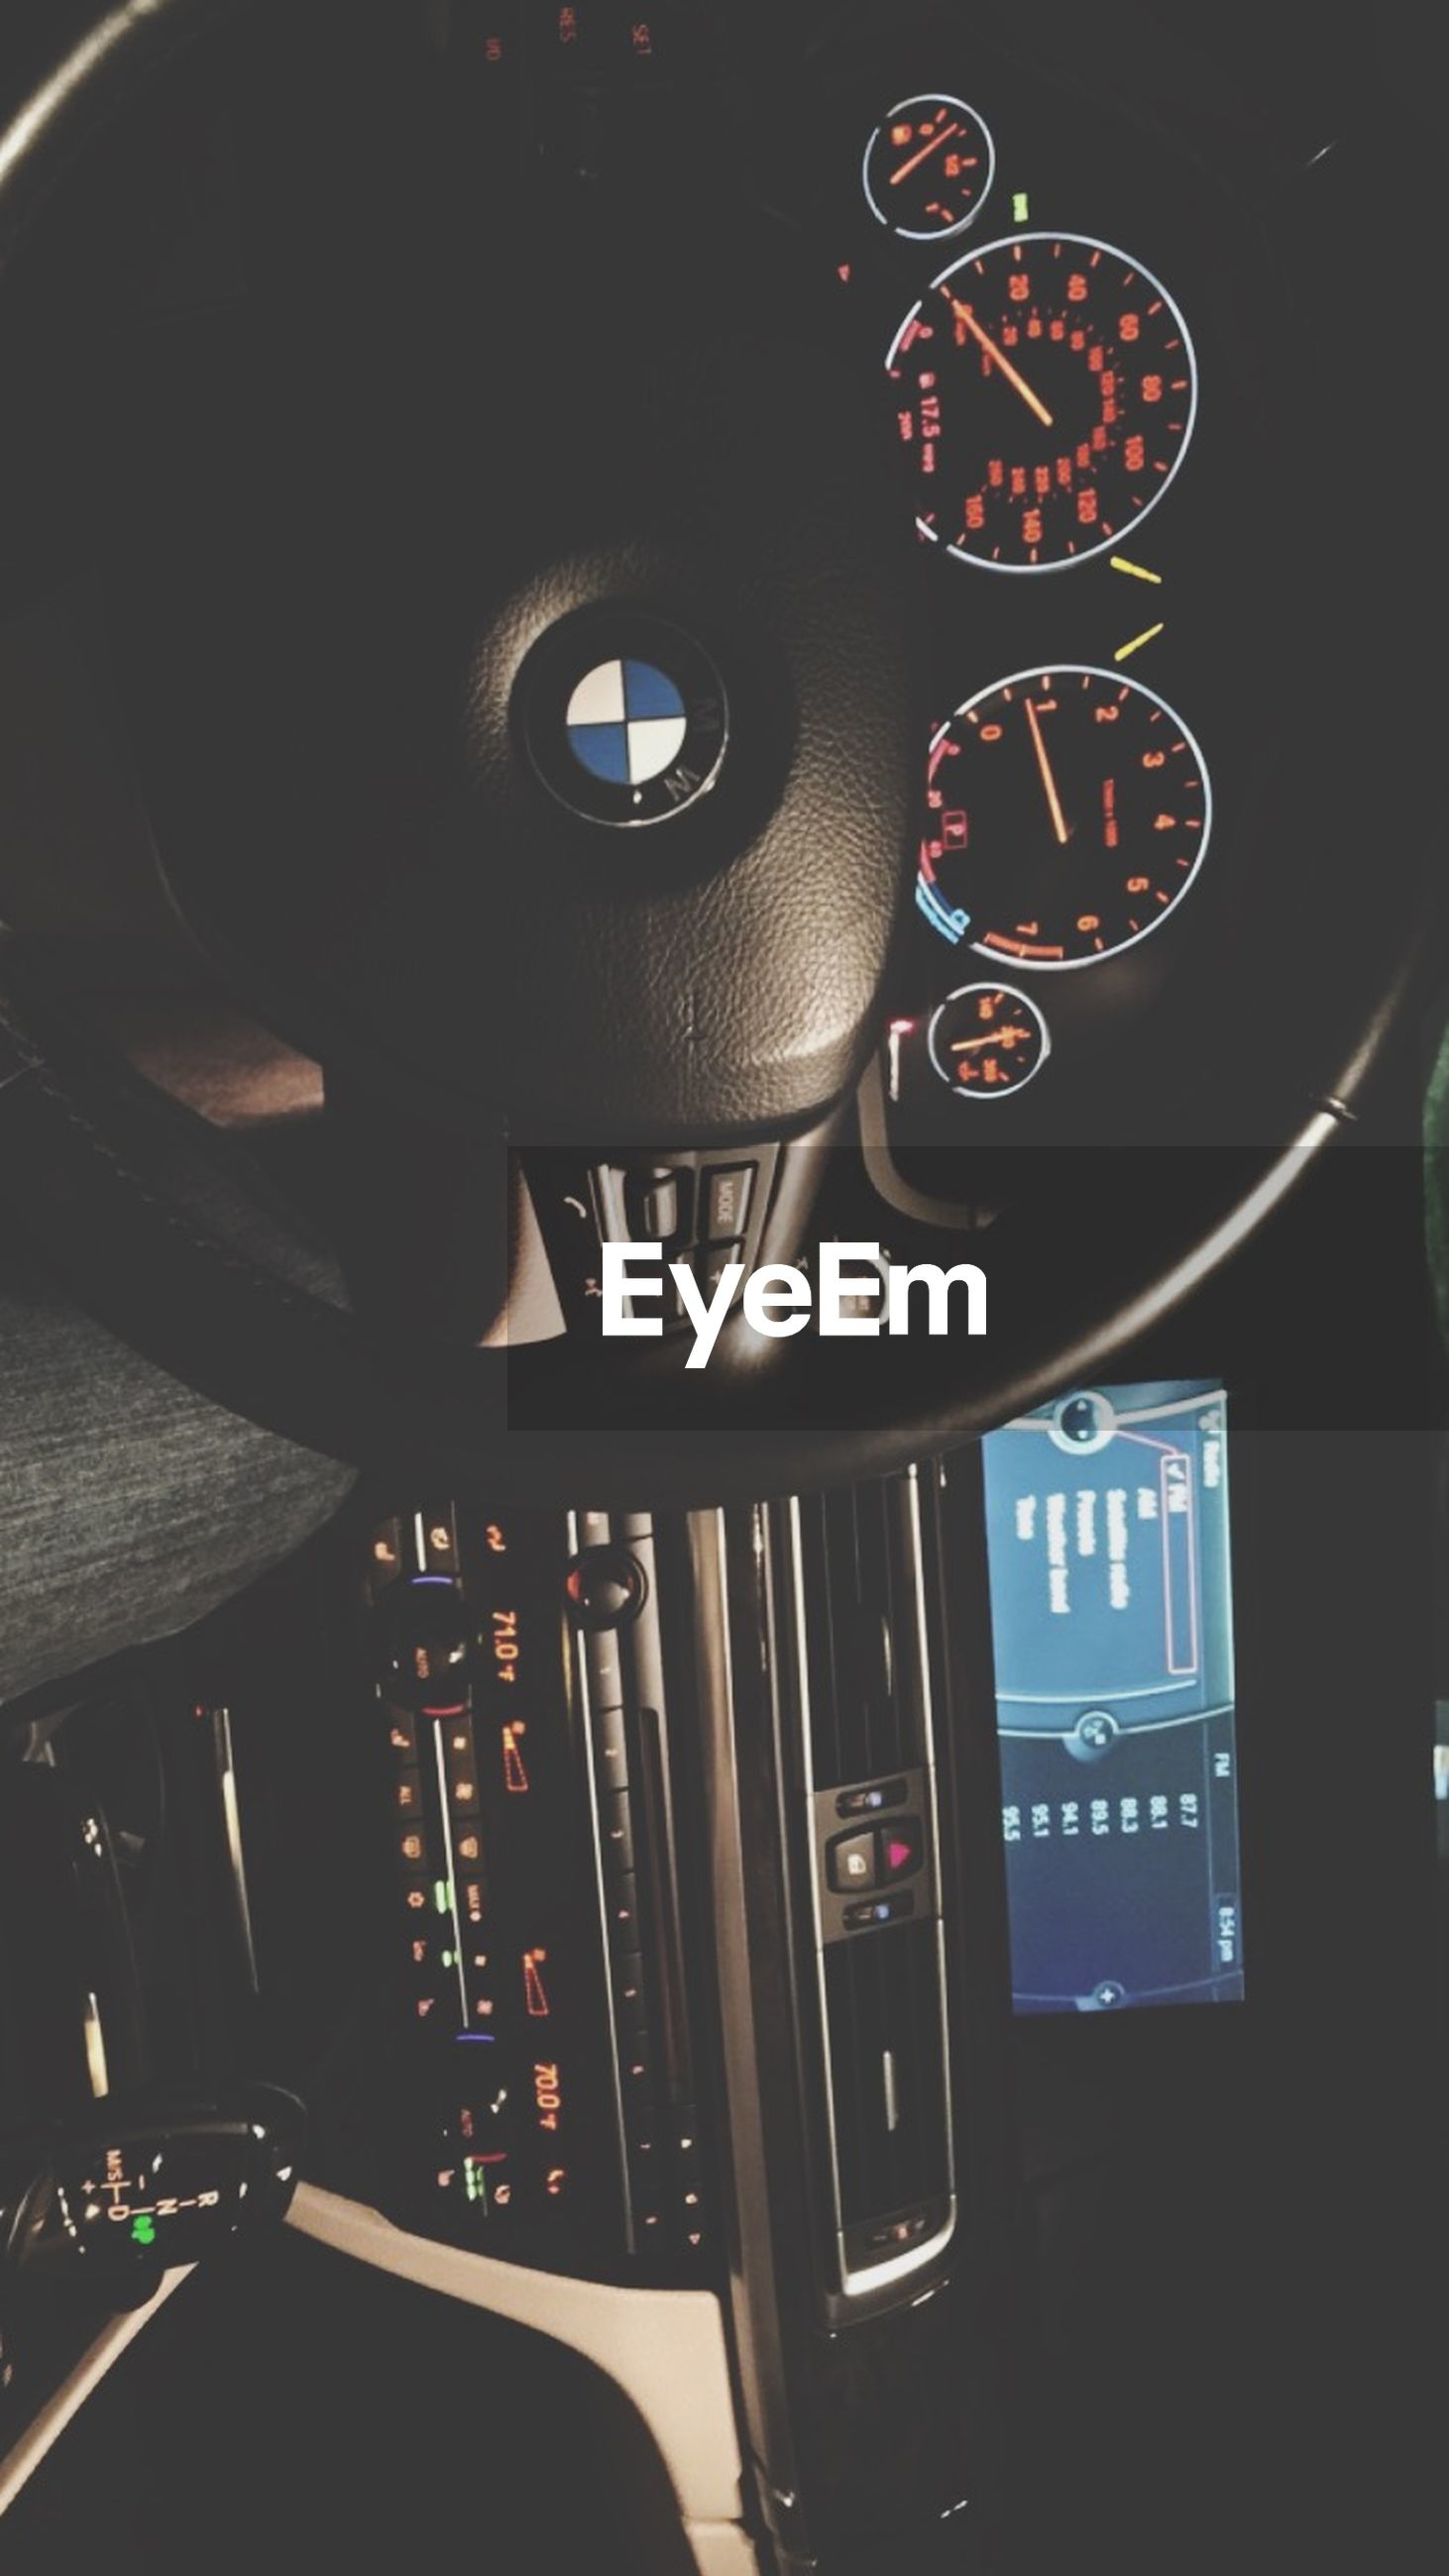 indoors, technology, car, land vehicle, close-up, transportation, communication, connection, retro styled, mode of transport, illuminated, arts culture and entertainment, old-fashioned, no people, high angle view, night, music, vehicle interior, car interior, control